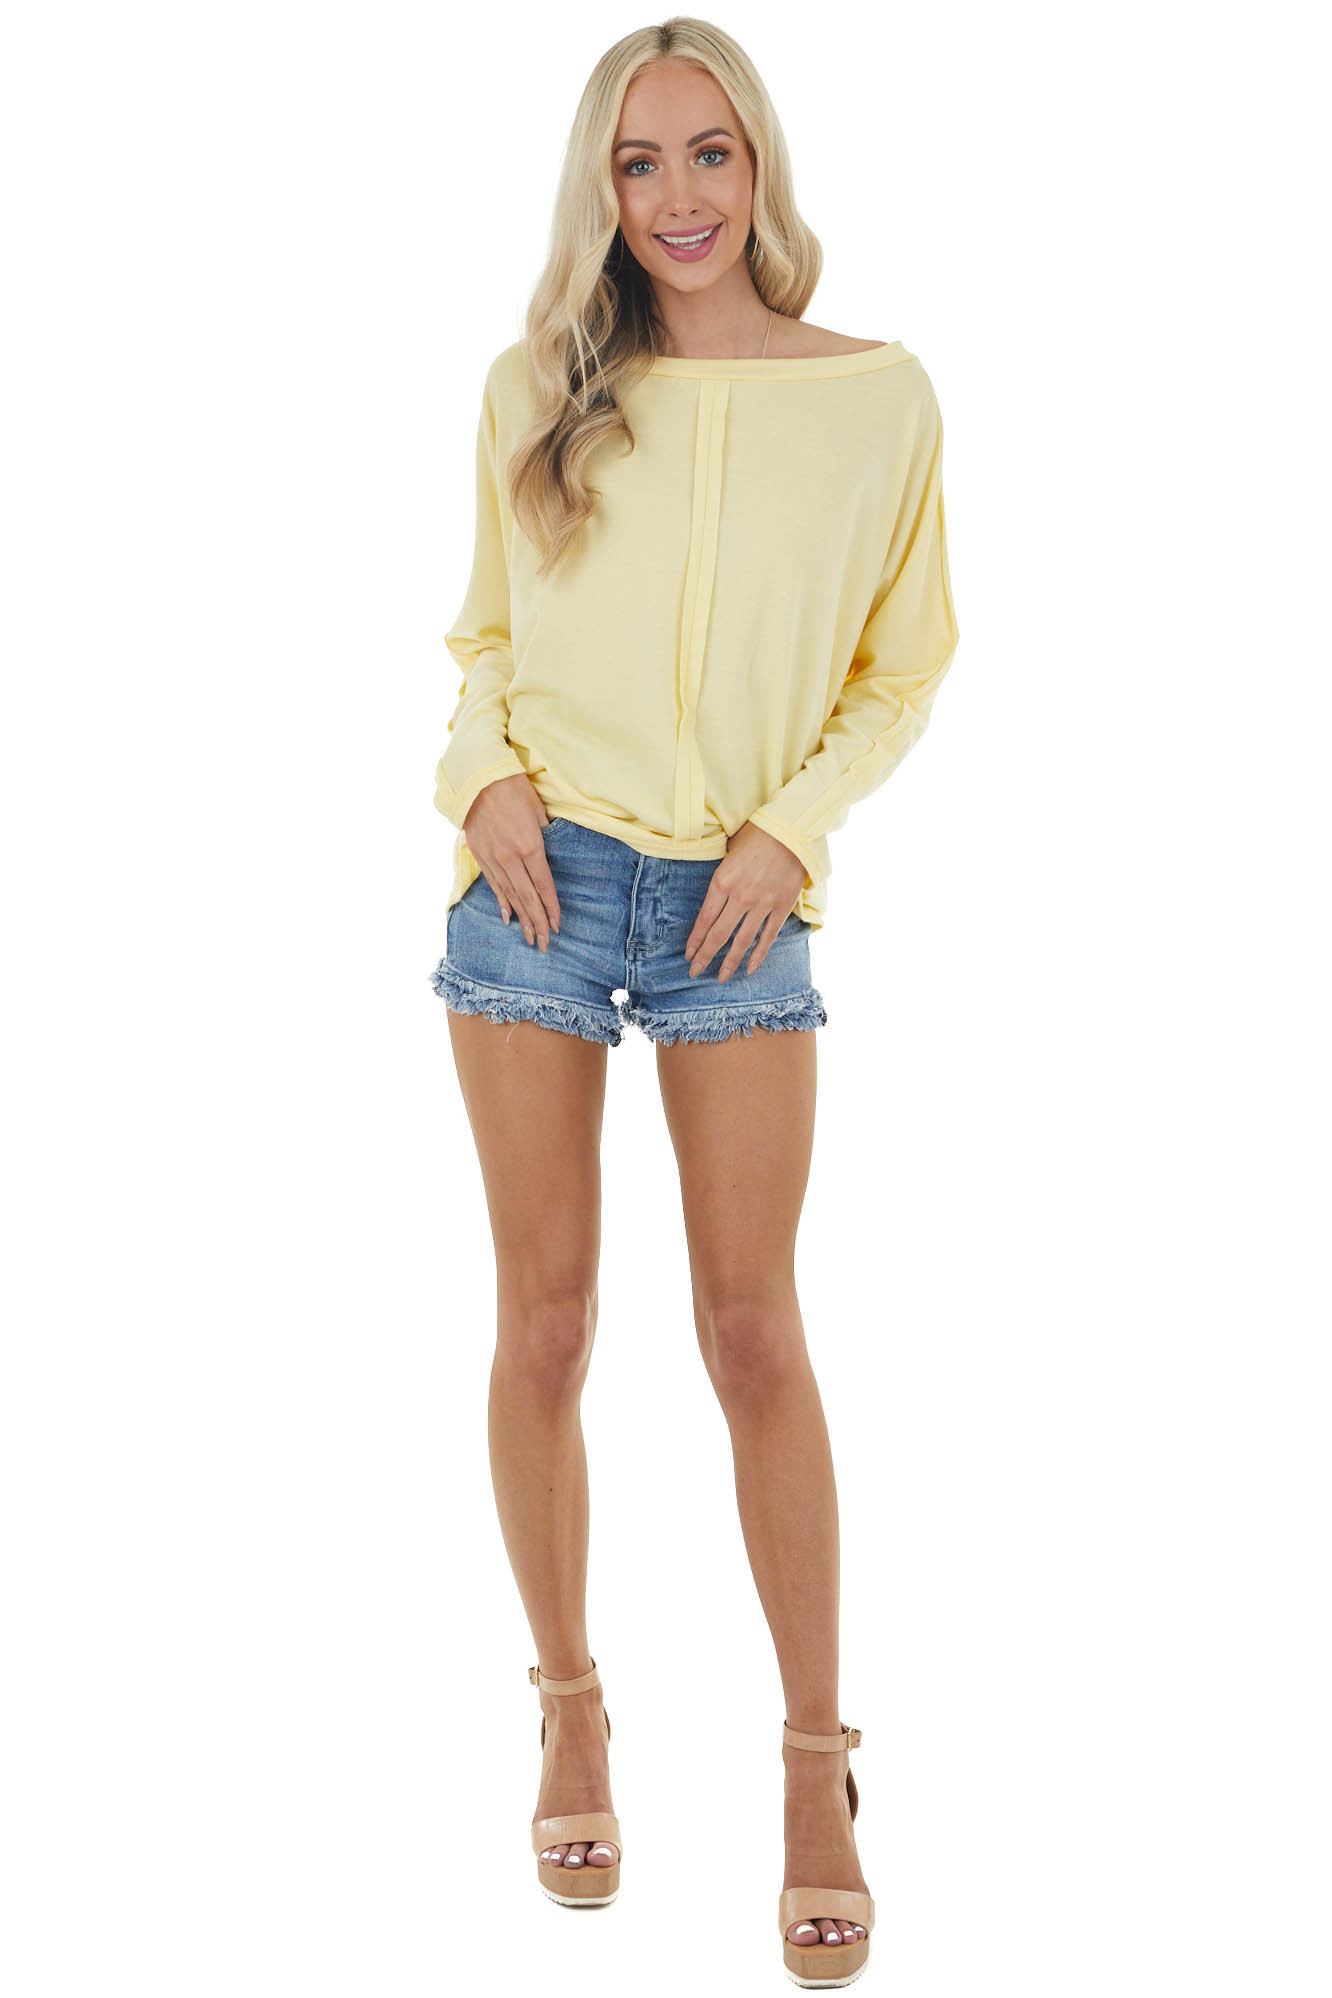 Pastel Lemon Long Sleeve Knit Top with Outseam Details